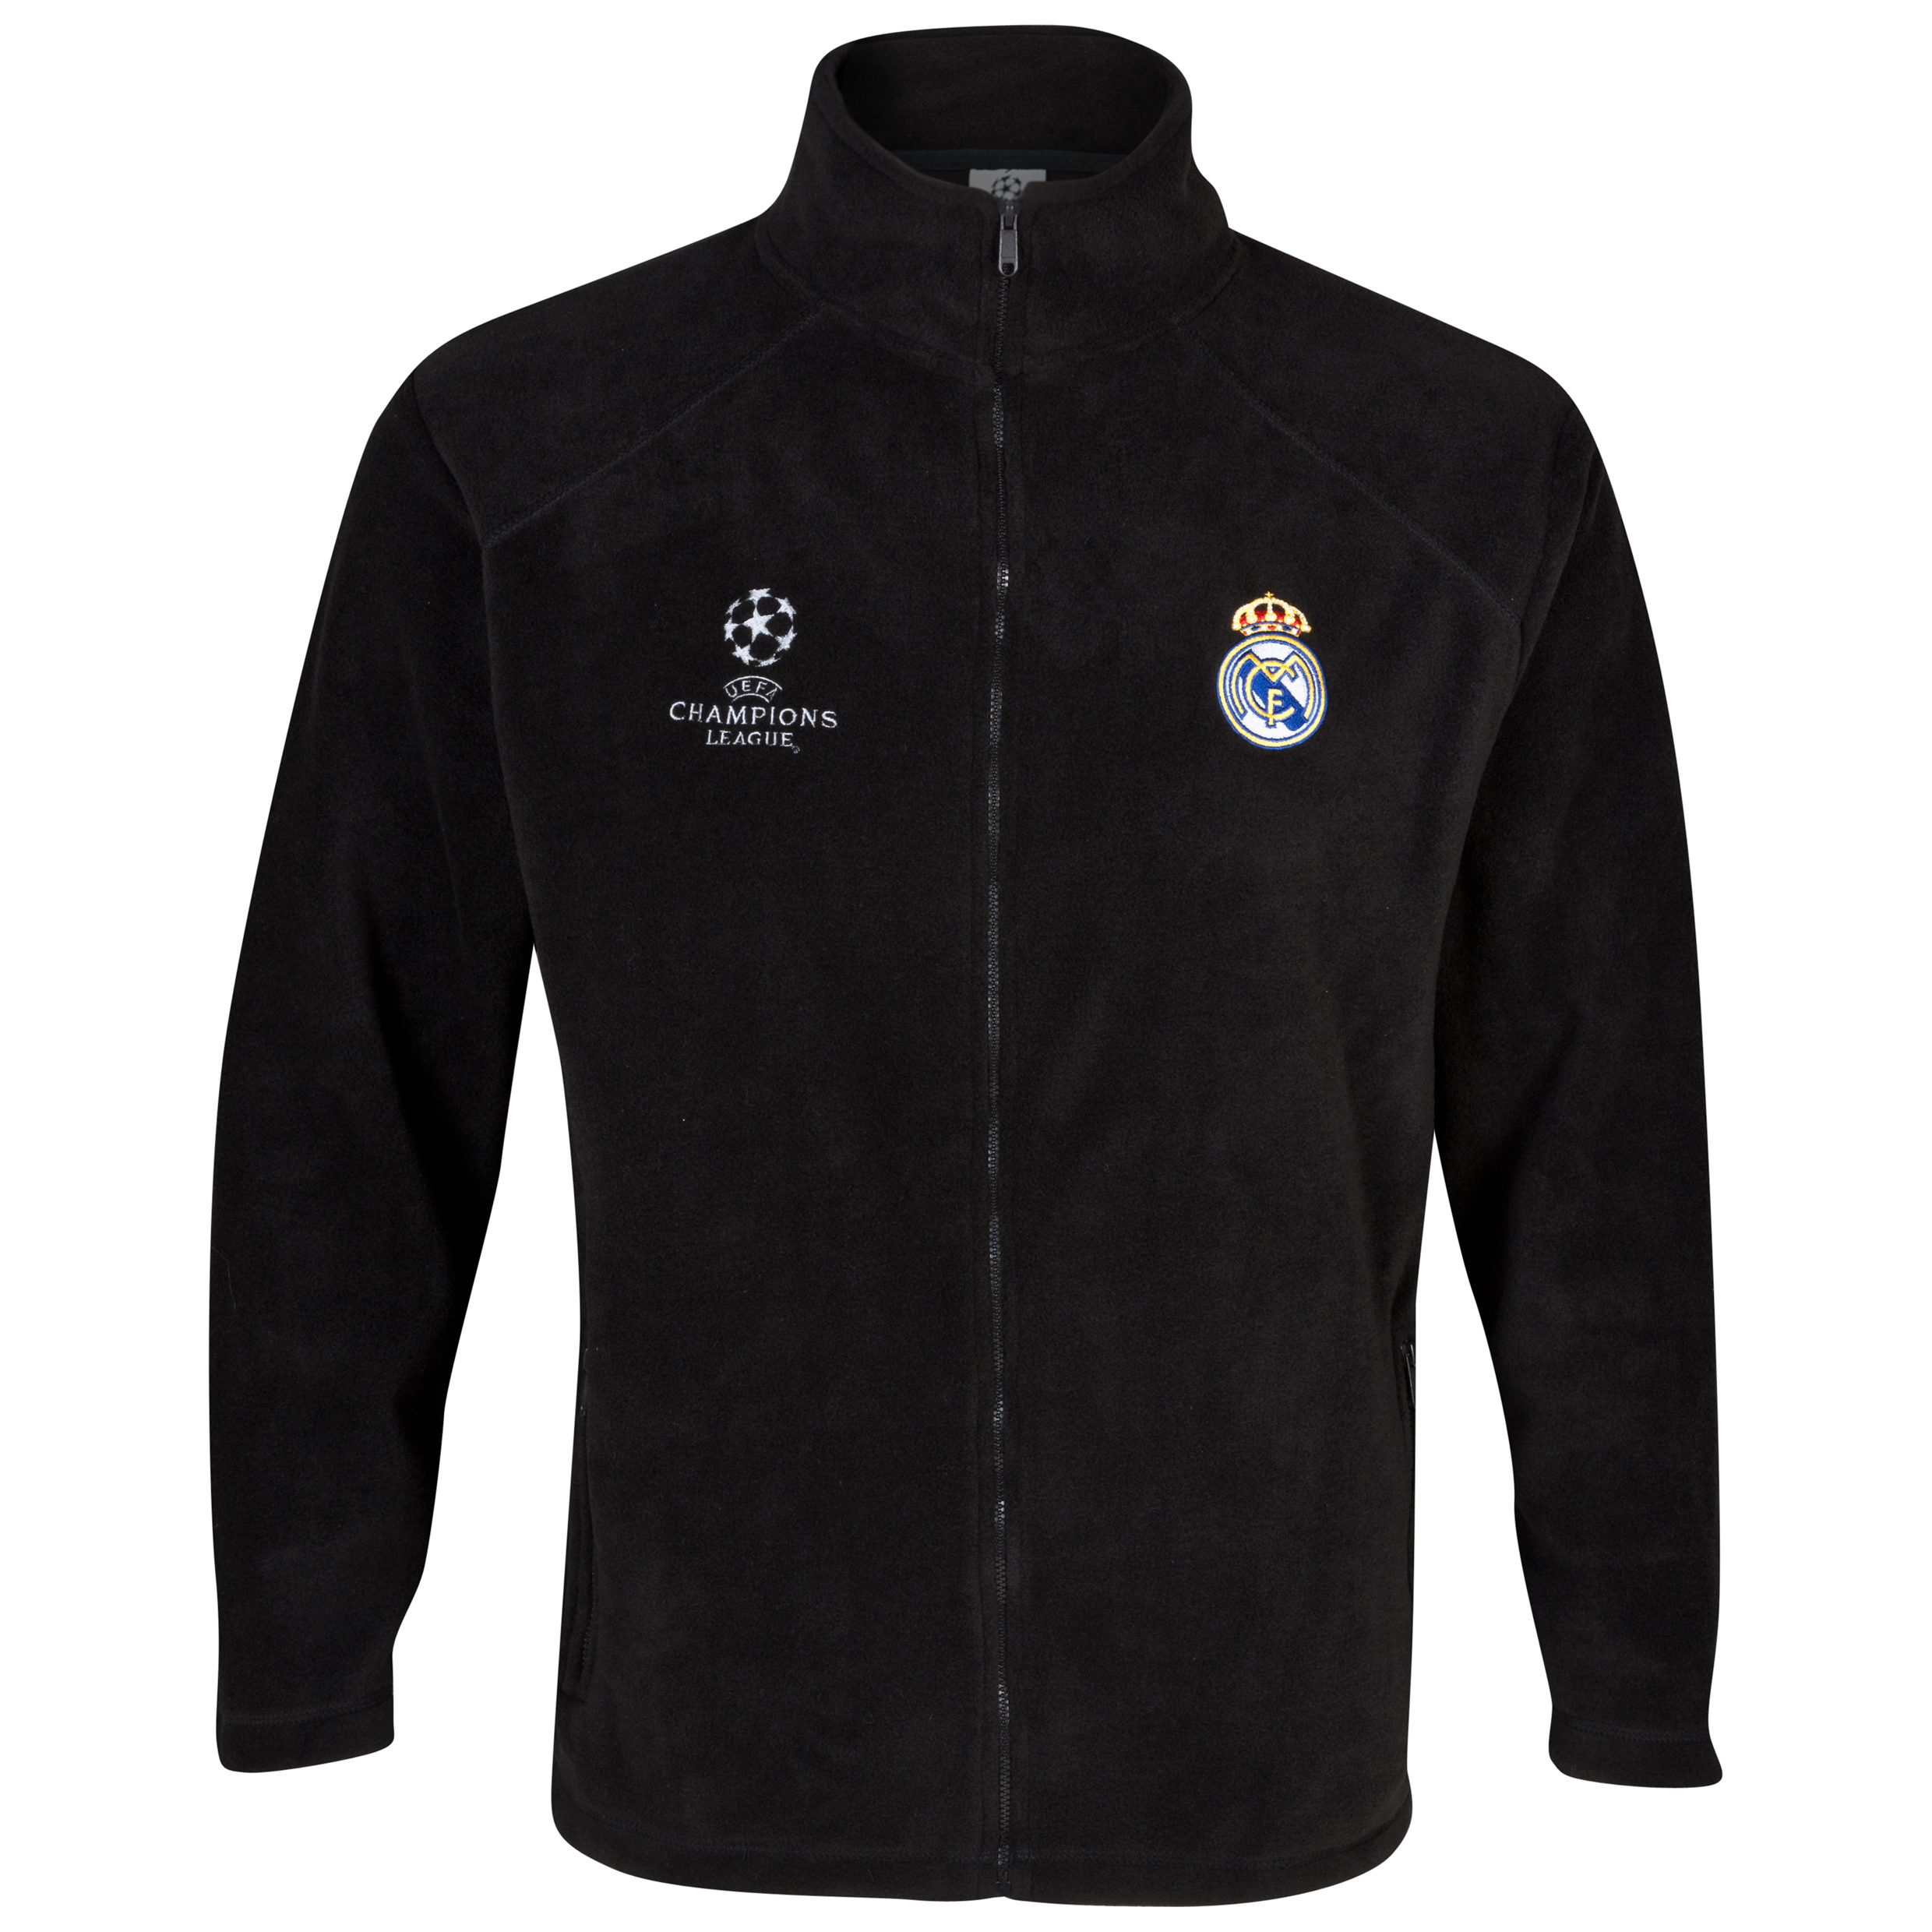 Real Madrid UEFA Champions League Embroidered Fleece Jacket - Black